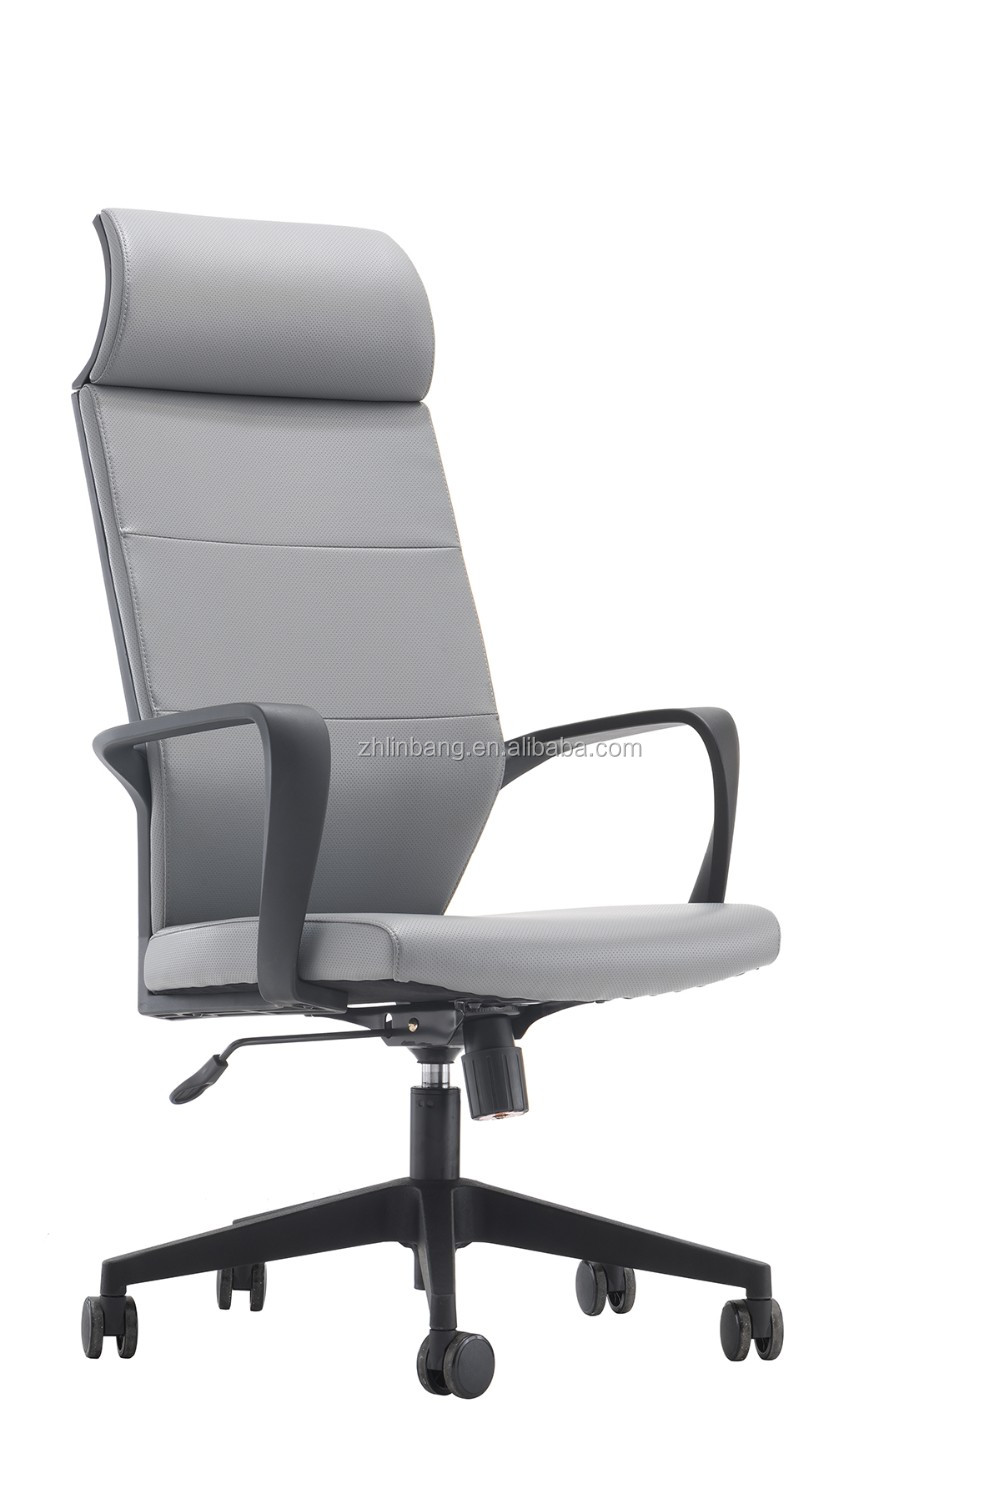 B008a Executive Office Chair Leather Home Office Chairs New Design Swivel Chair Buy Leather Chairs Executive Office Chair New Design Office Chair